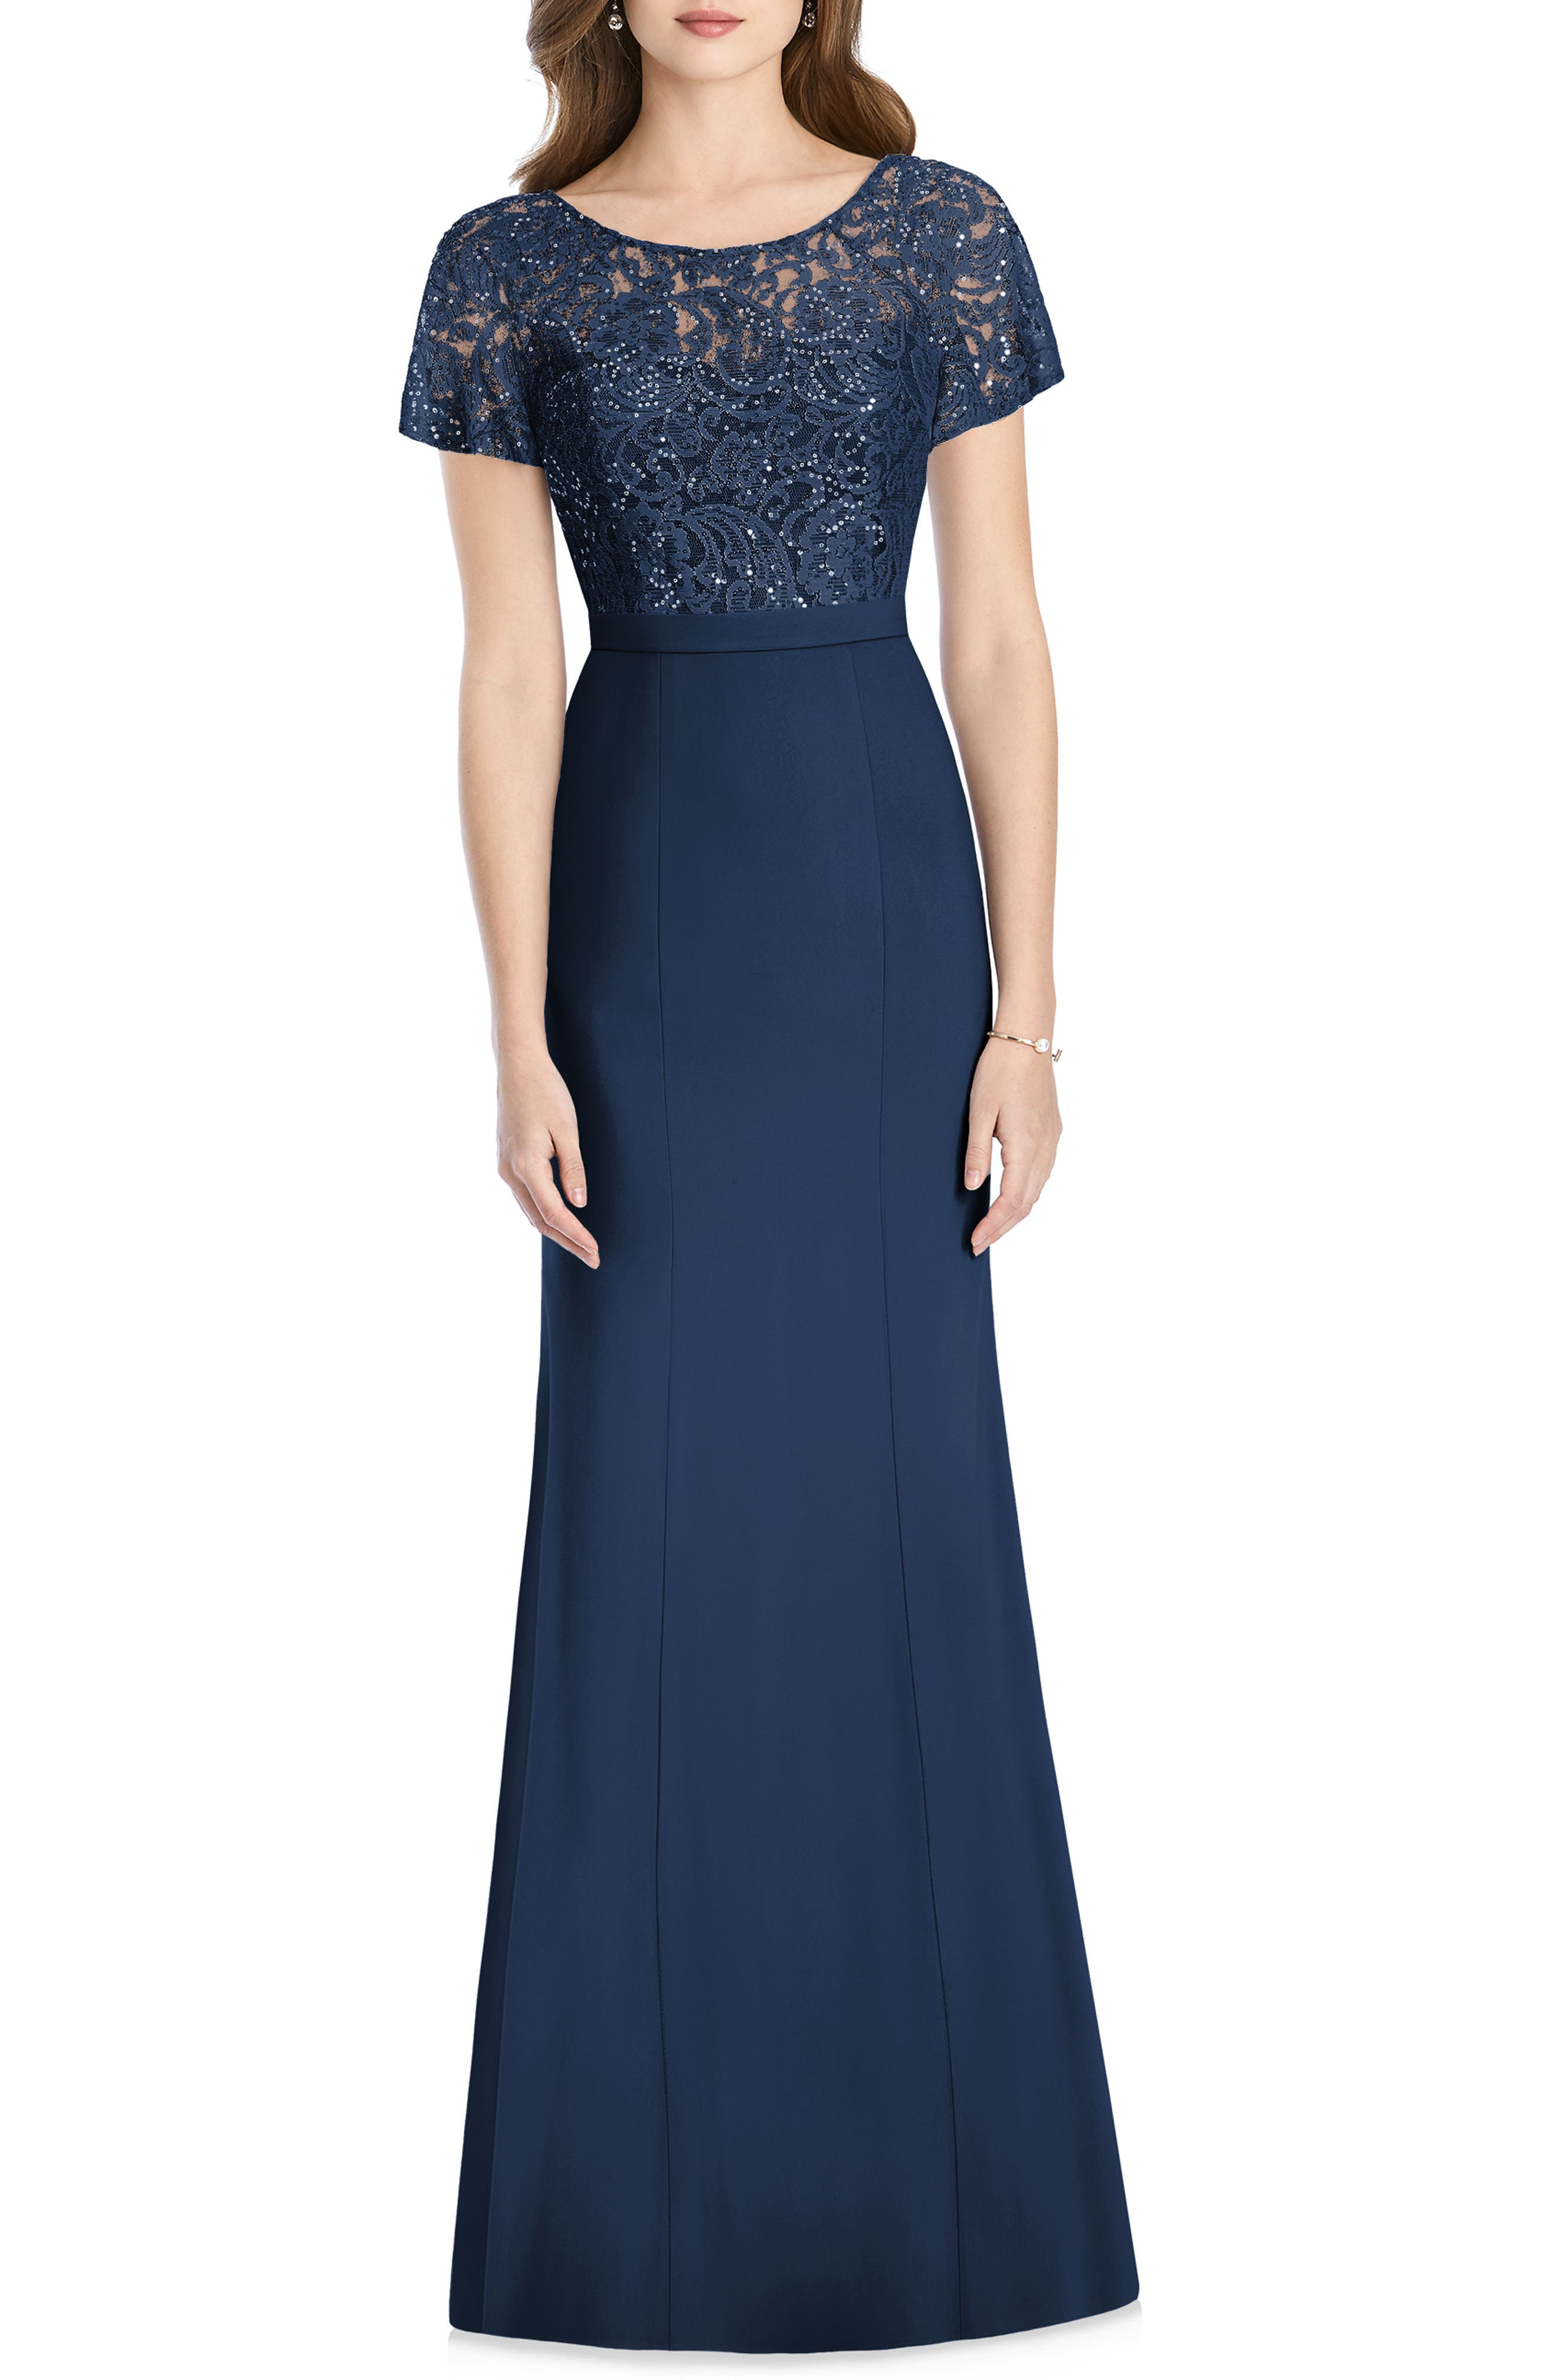 Jenny Packham Embellished Lace Gown